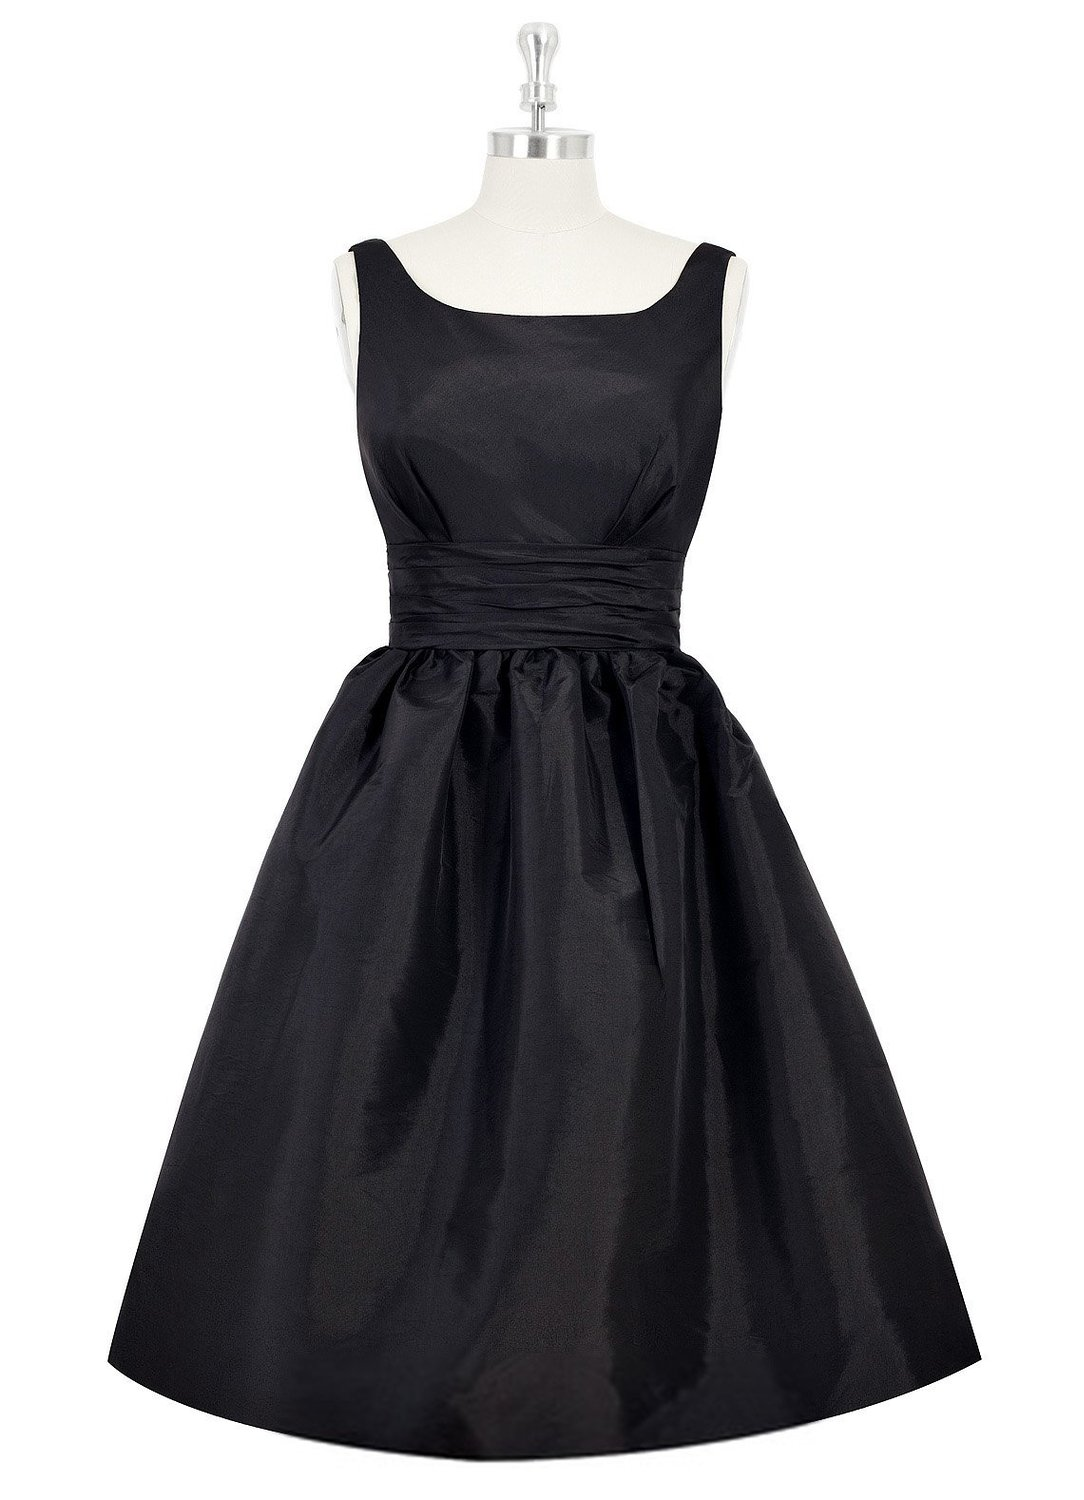 56a46c274c Women s Knee-length Satin Frock Scooped Back Swingy Black Dresses Ladies  prom party Dress